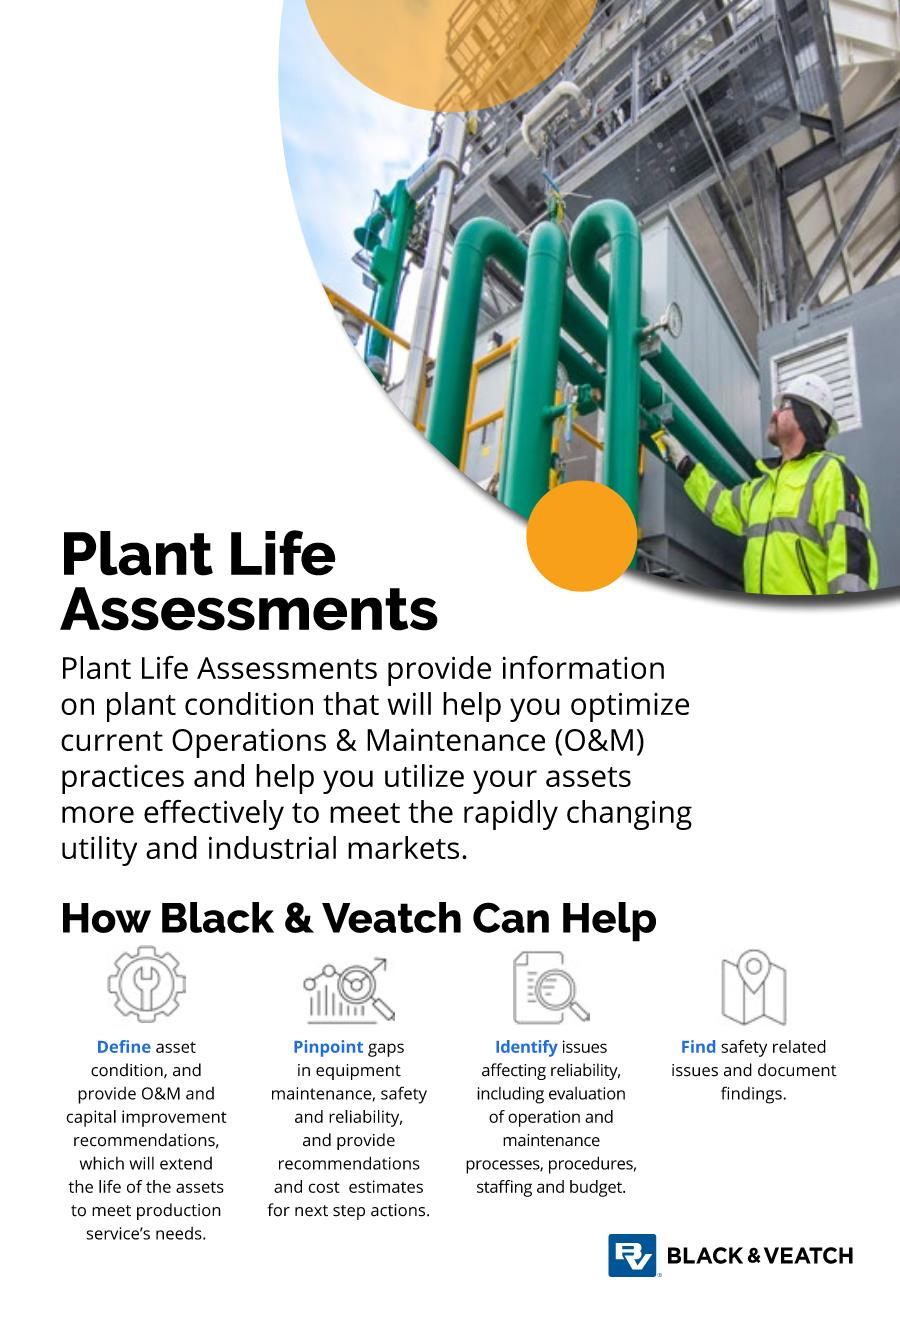 Plant Life Assessments